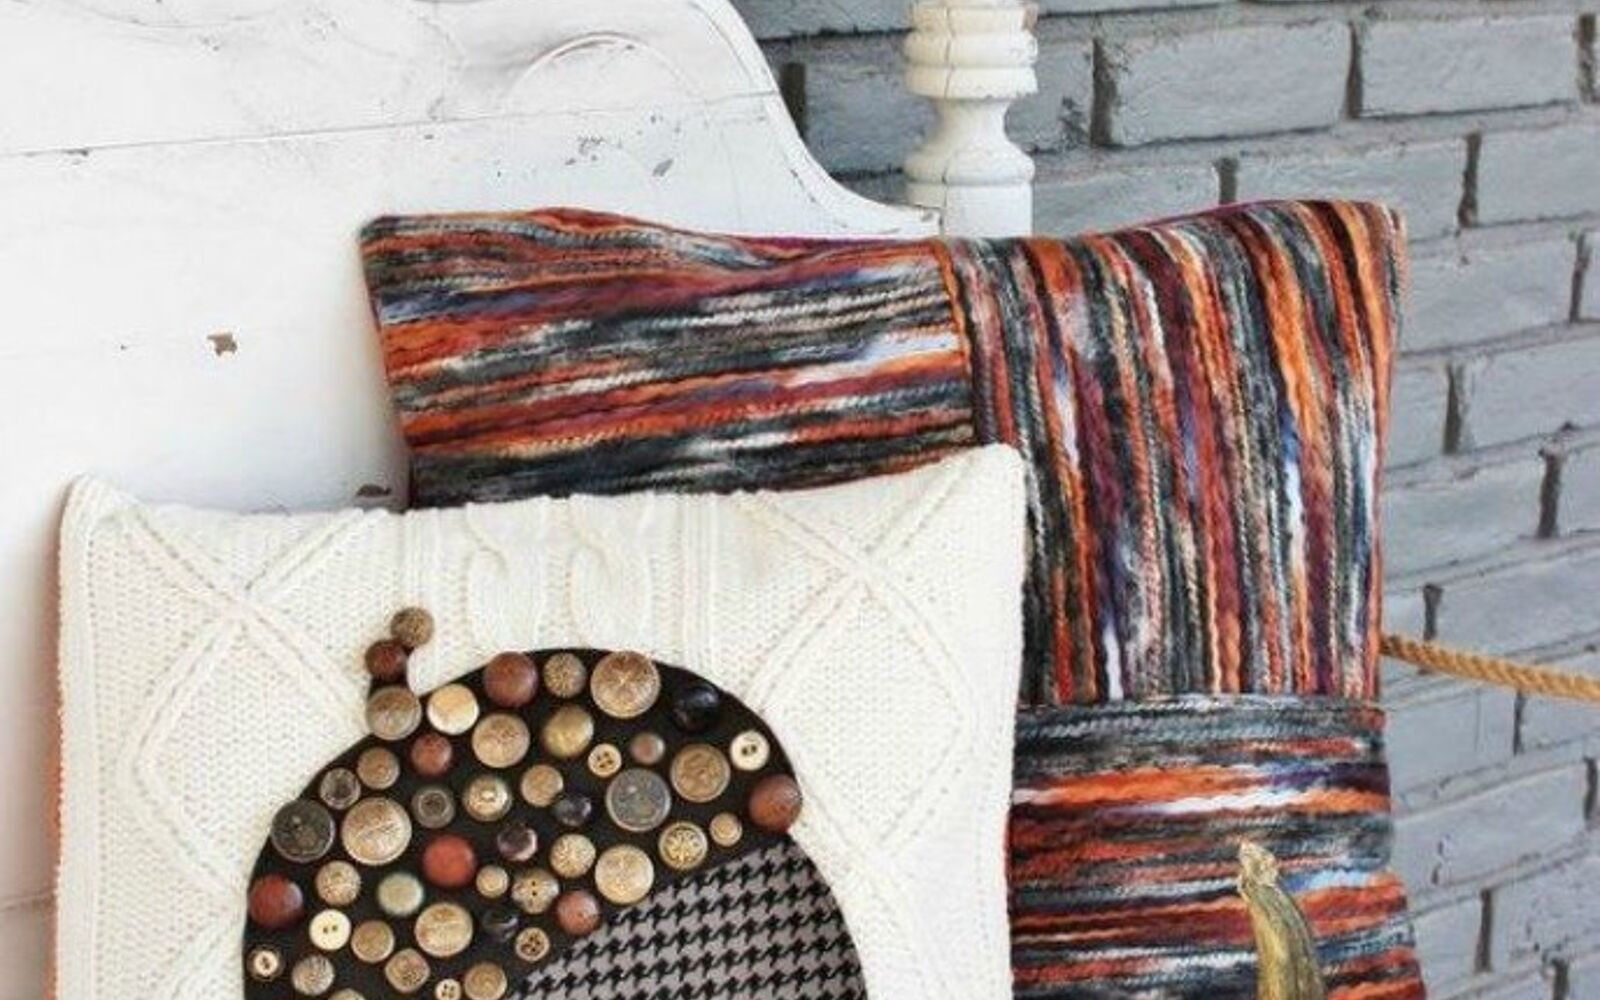 s 15 quick and easy gift ideas using buttons, Use them to glam up your throw pillow